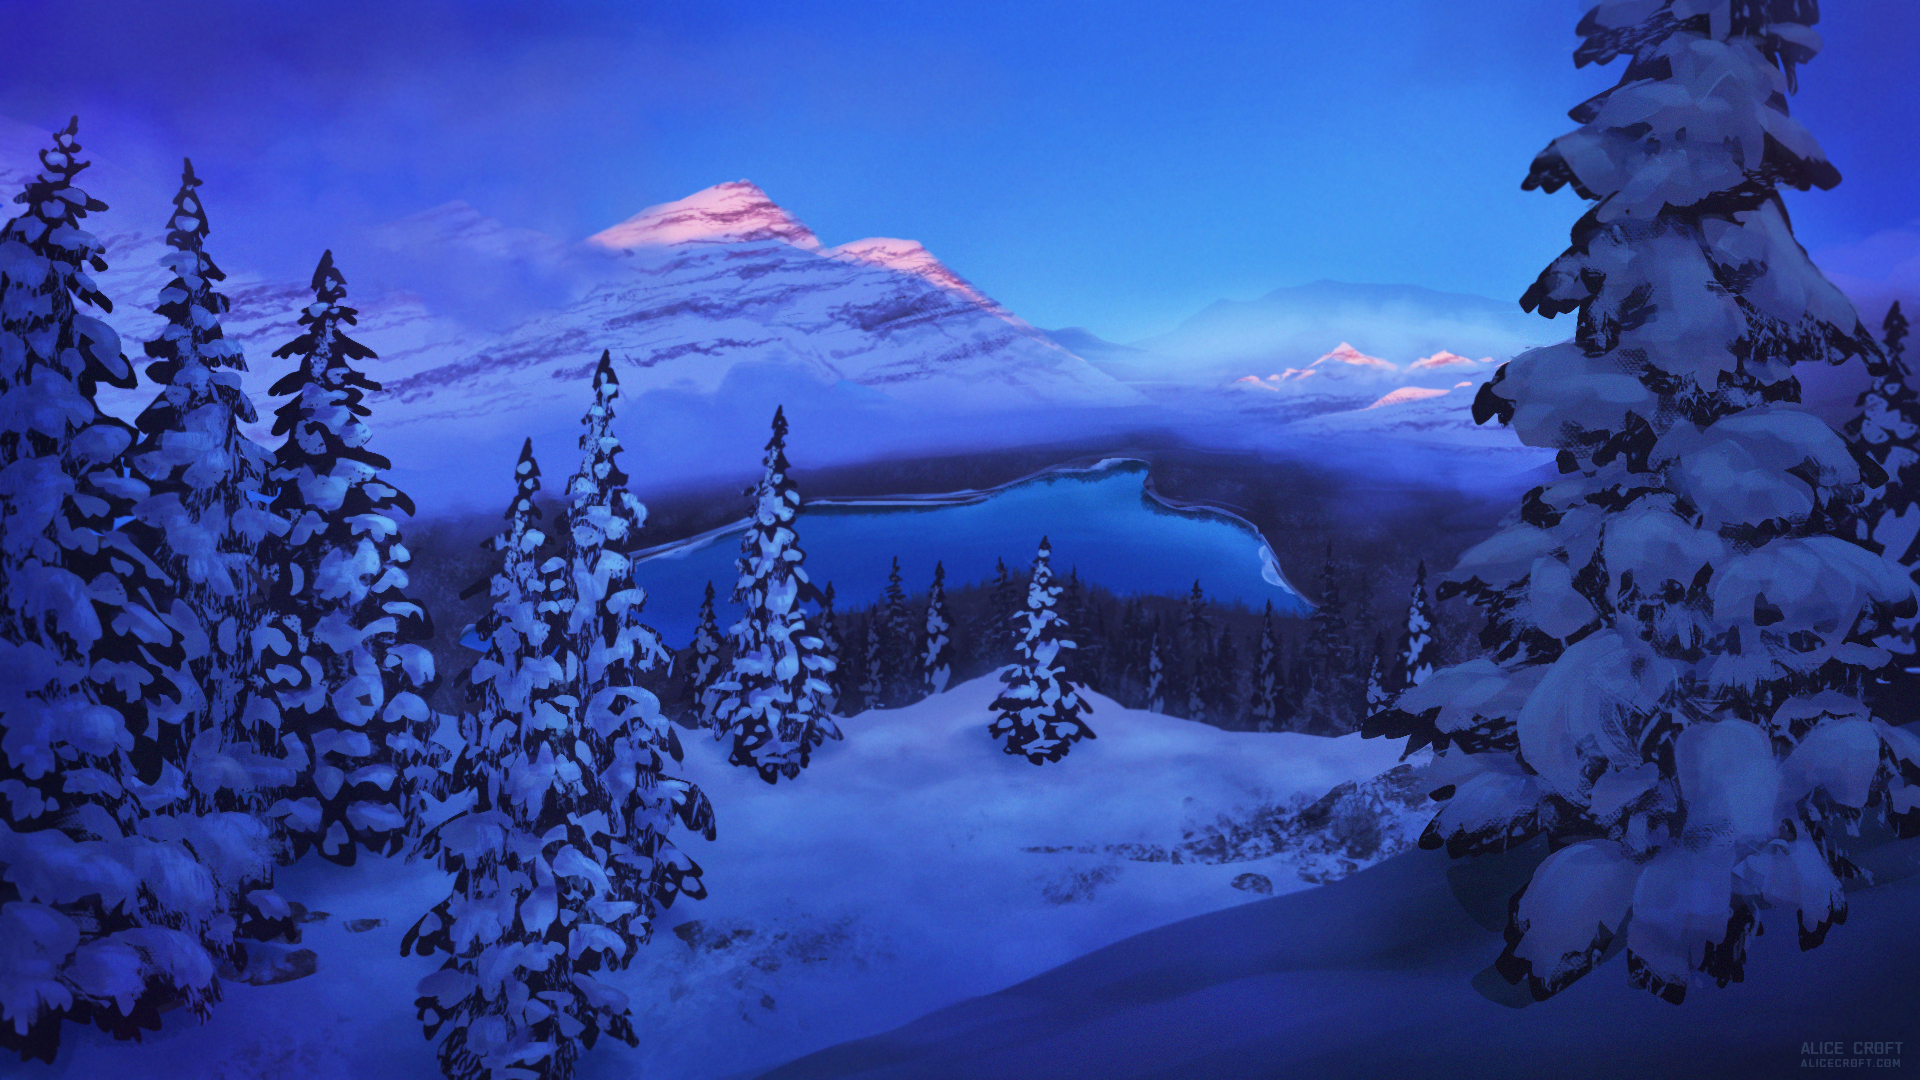 Art-environment Winter lake snow mountains Landscape spruce Sunrise by artist Alice Croft Зима озеро горы ёлки снег рассвет